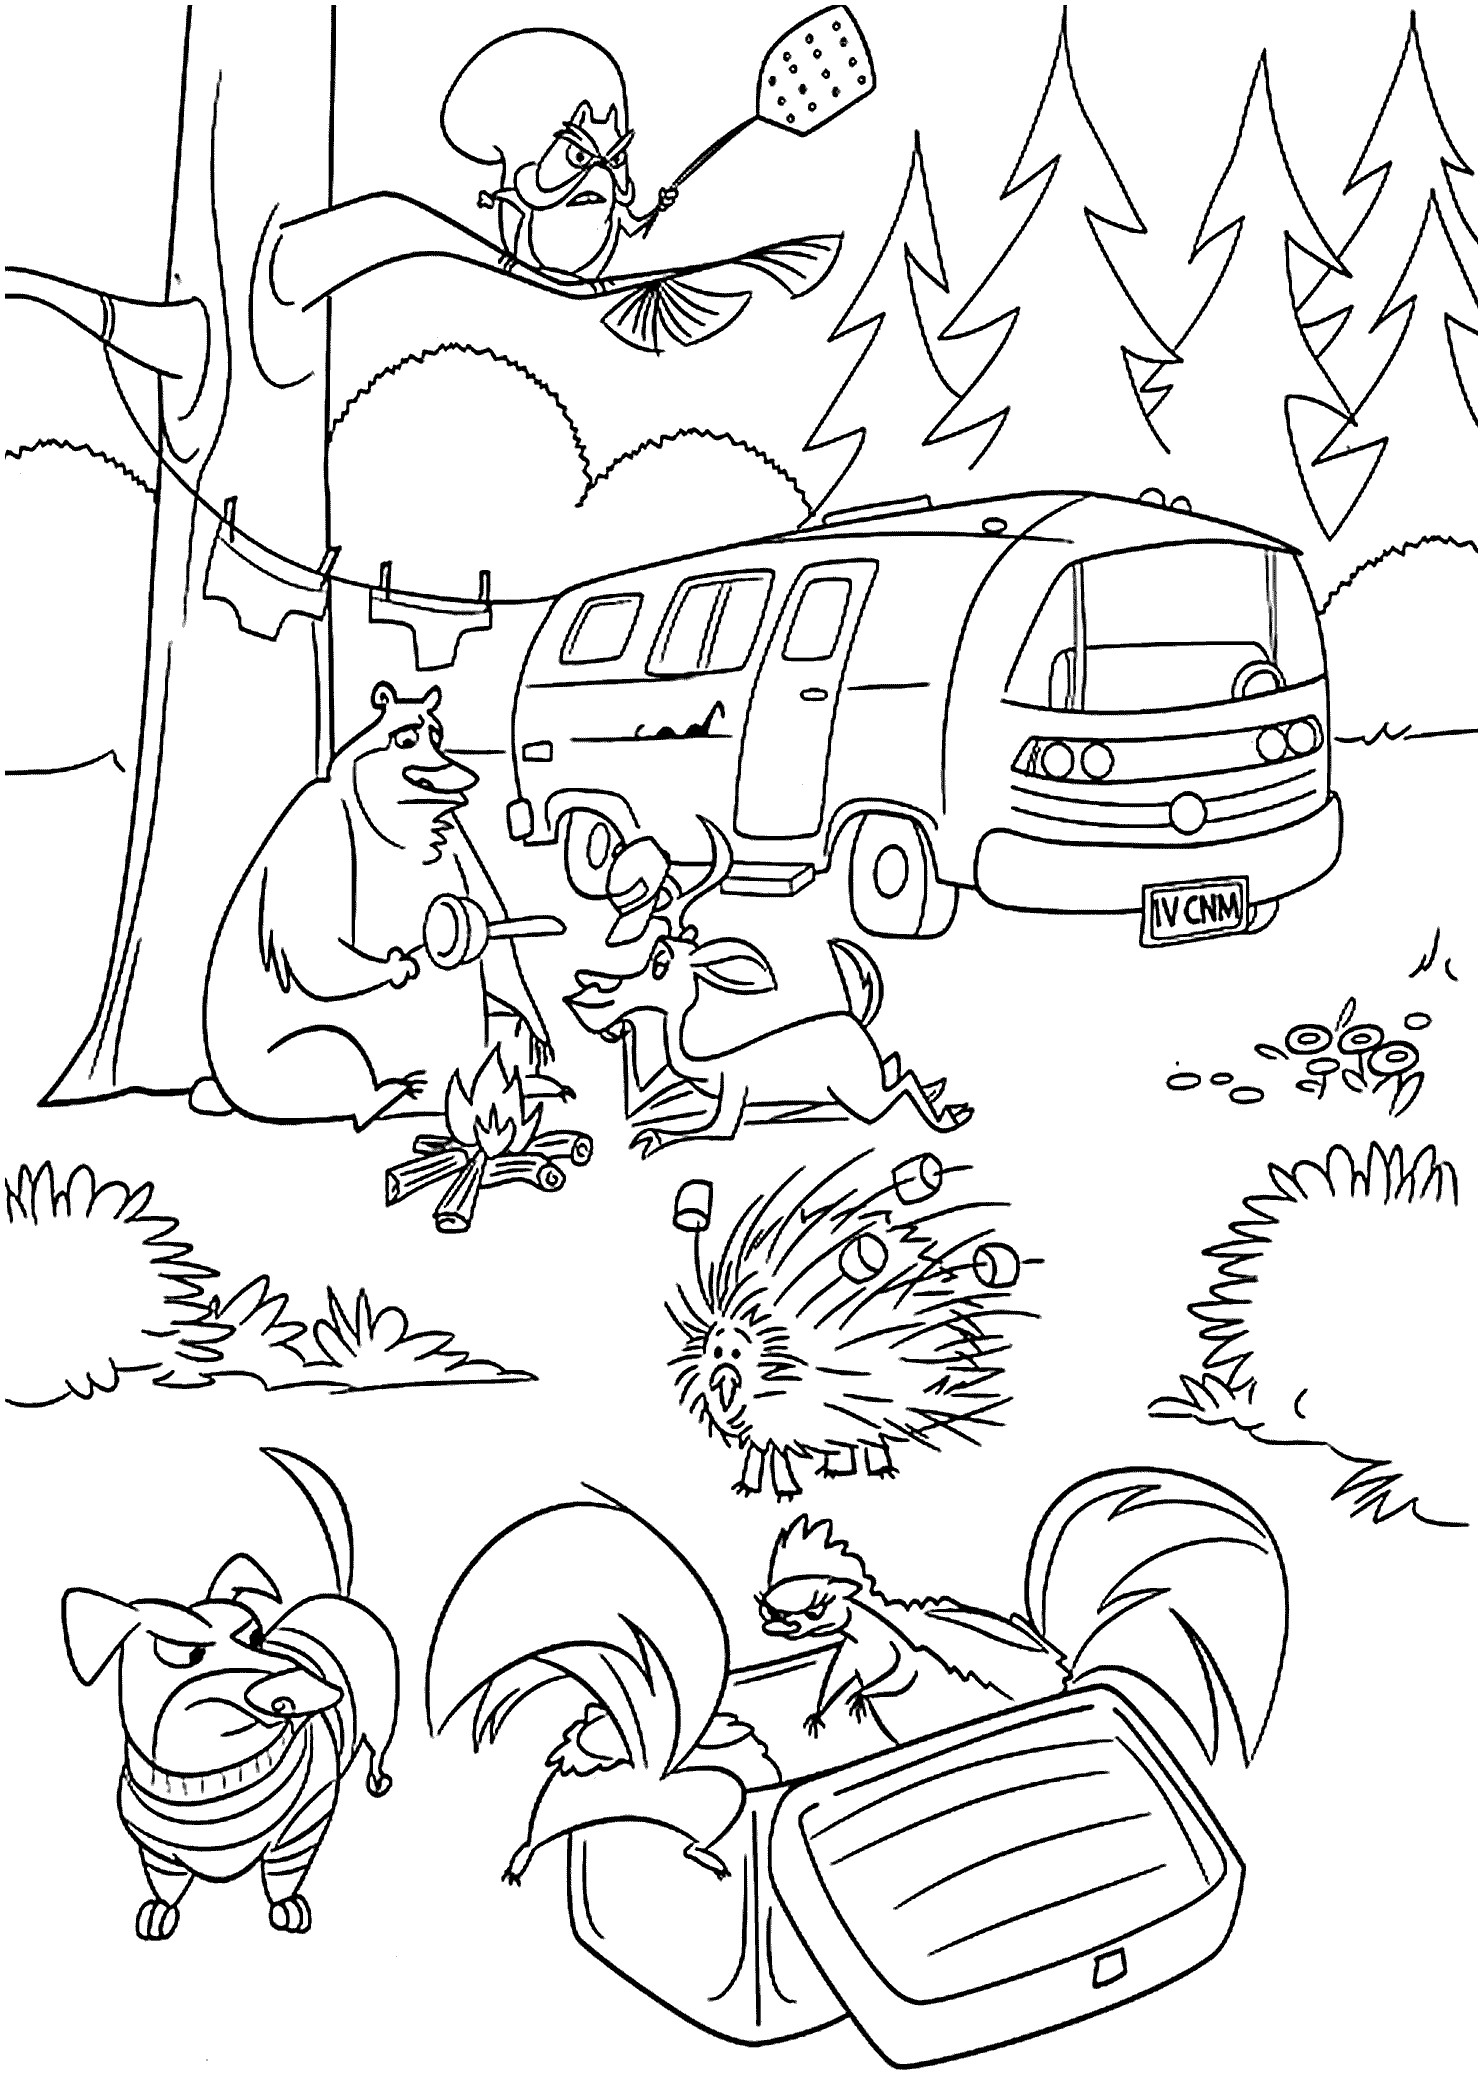 Firefighter Coloring Pages For Preschoolers Printable